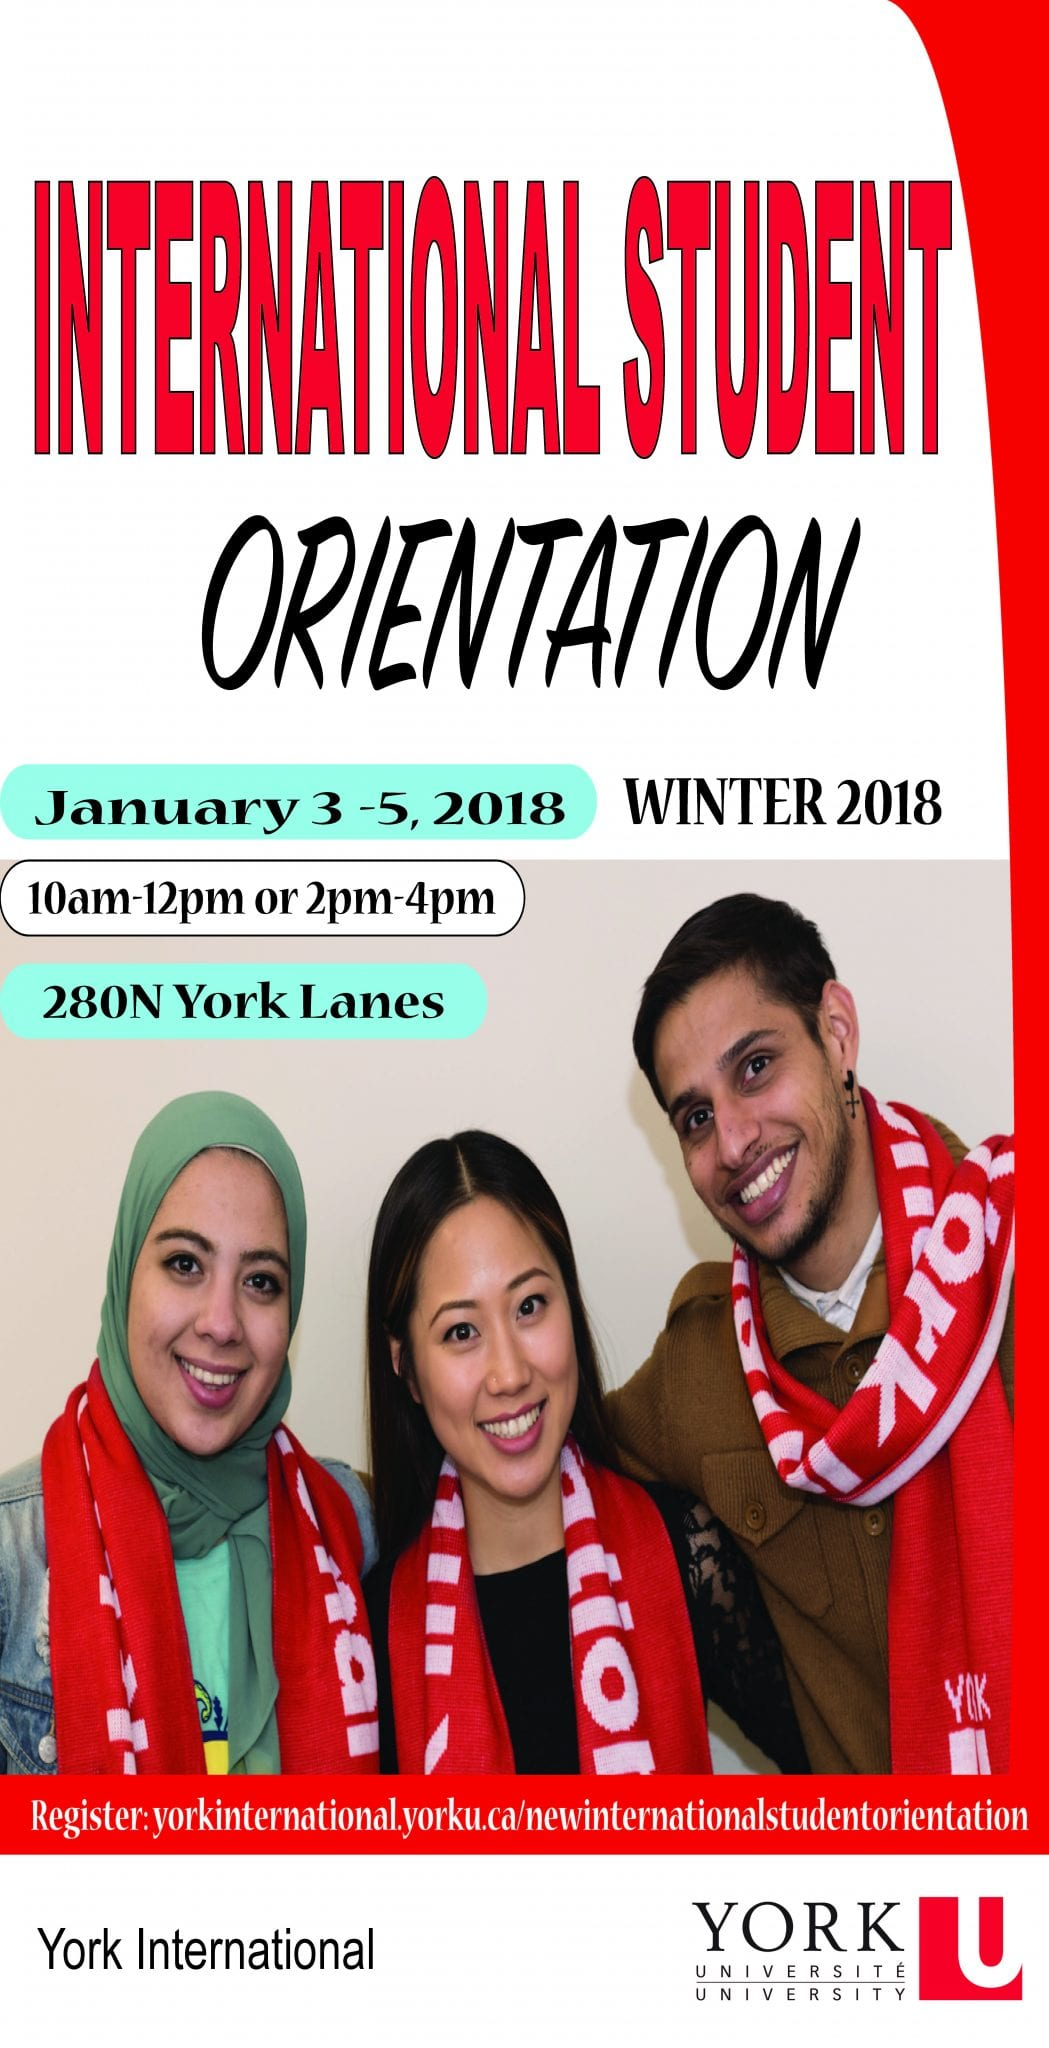 New International Student Orientation @ York Lanes, Room 280N (second floor)